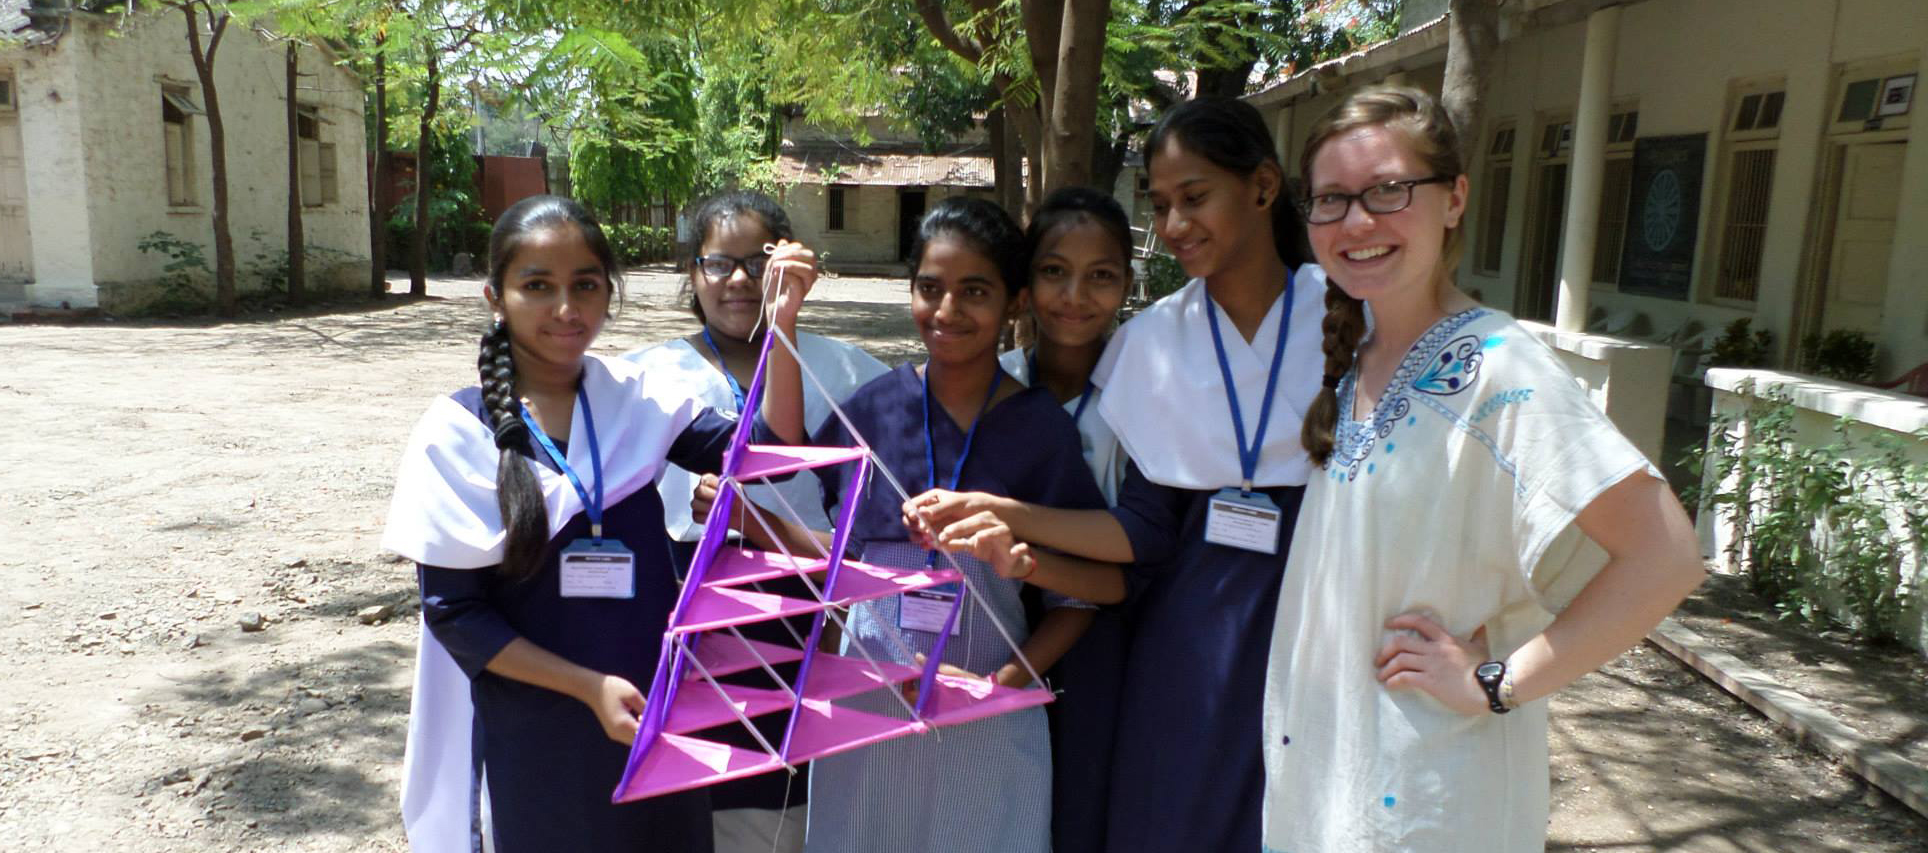 Society of Women Engineers in India (Photo by Monica Walker)